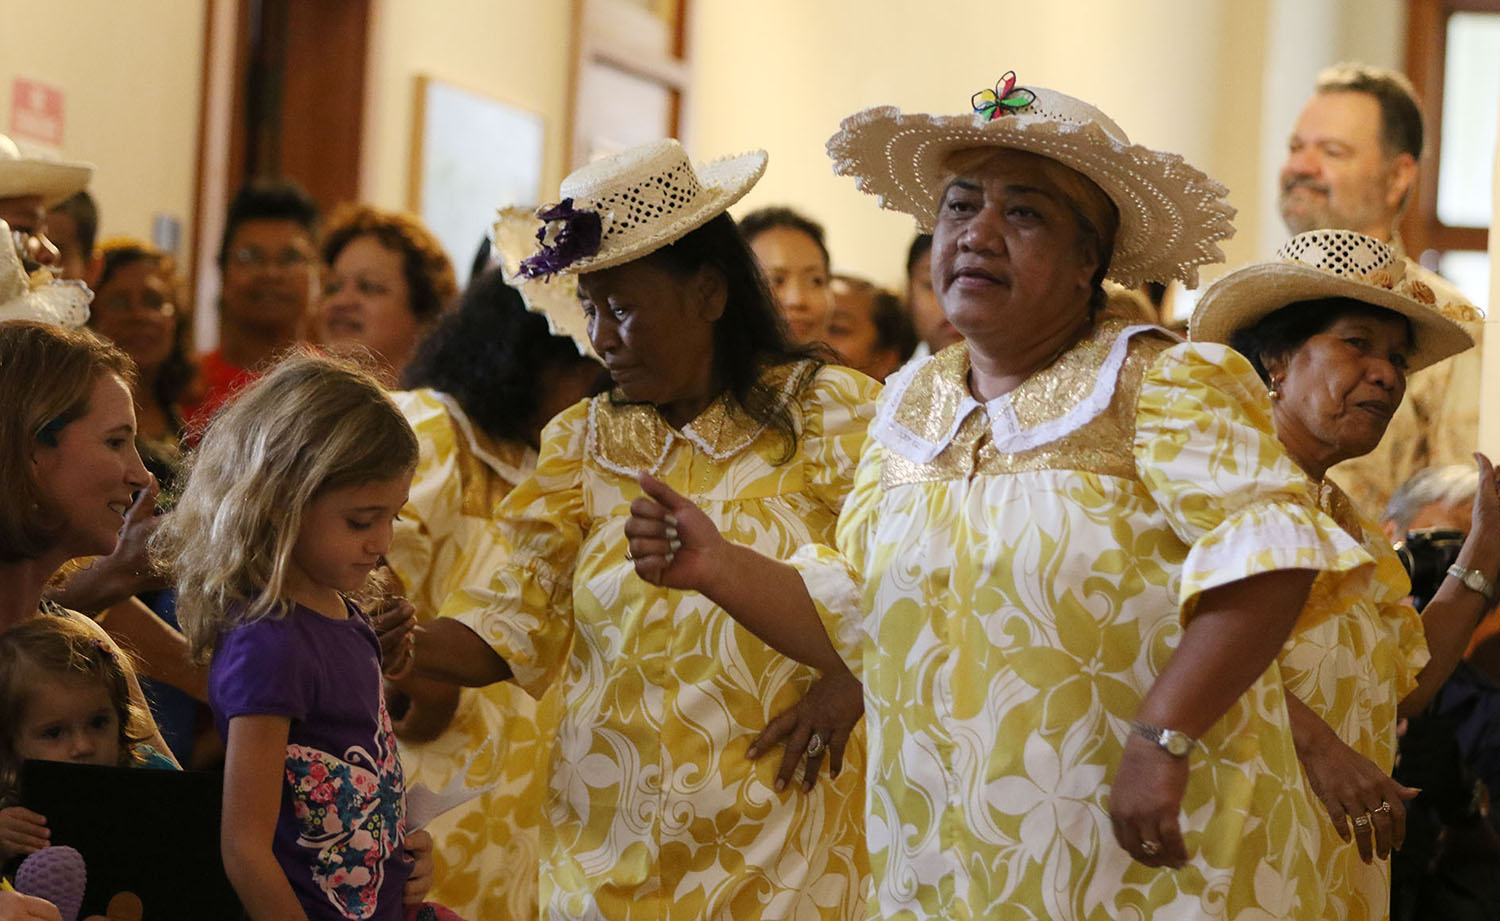 <p>The Lale Dron Dance Group brought an elegant touch to &#8220;Celebrate Micronesia.&#8221;</p>